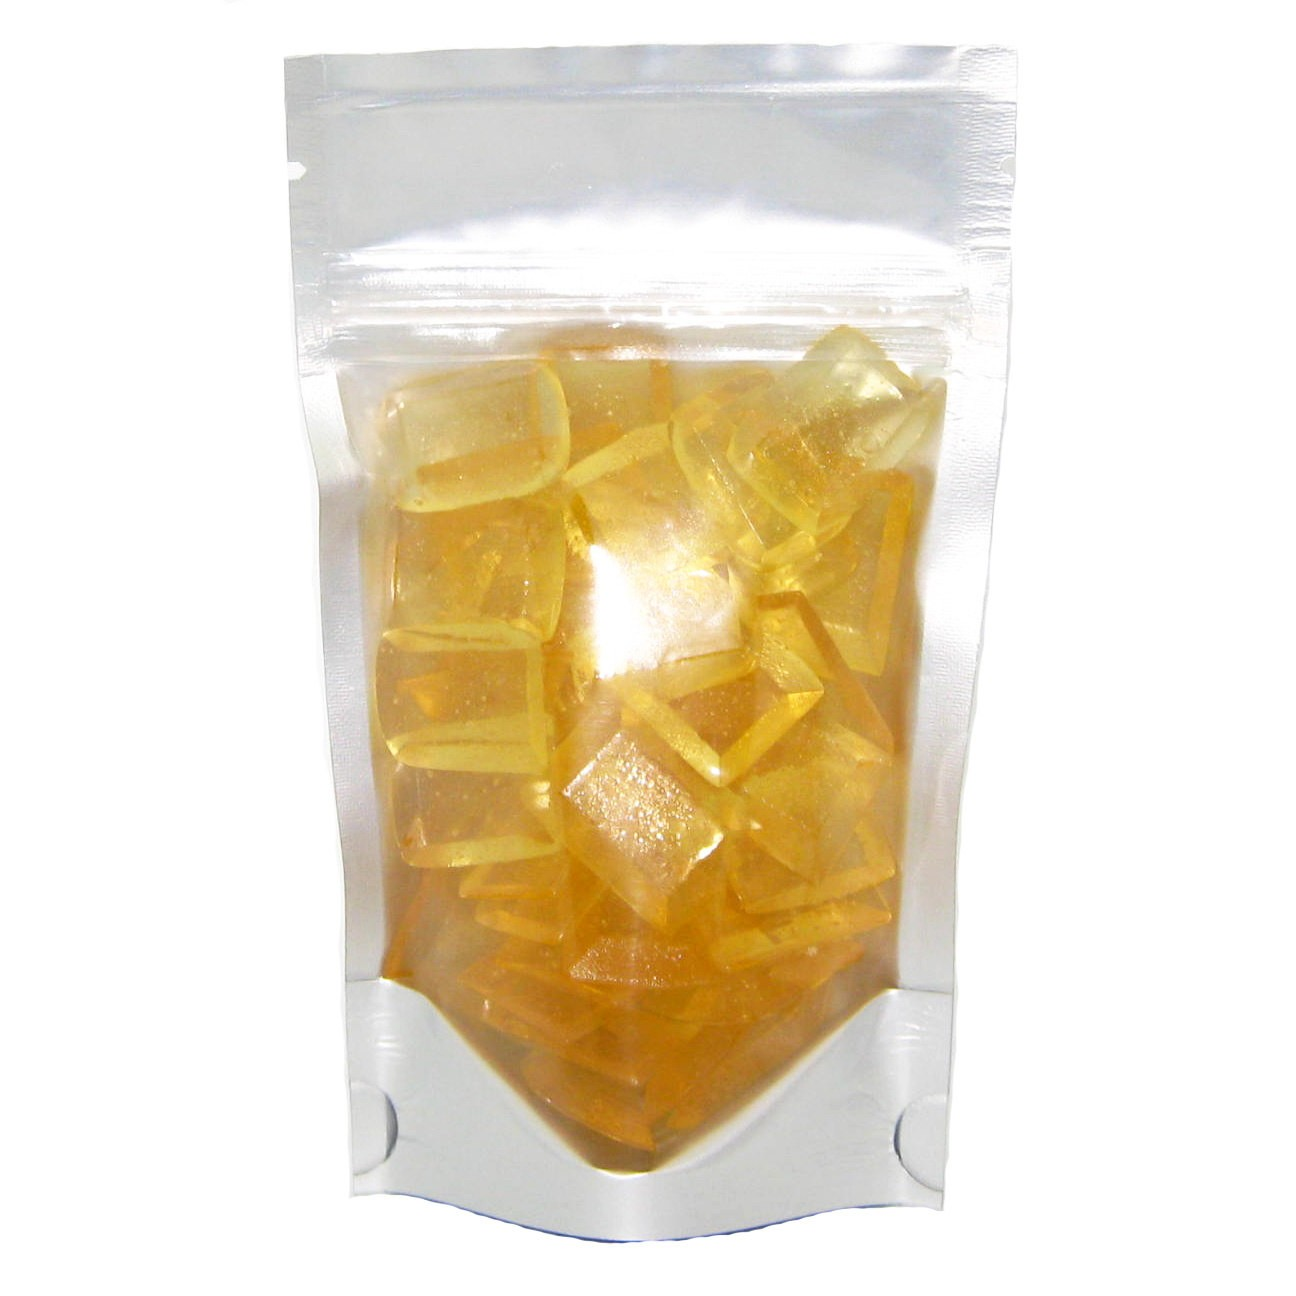 Jewels Candy Mystery Box - Jewels 2 oz. Bag